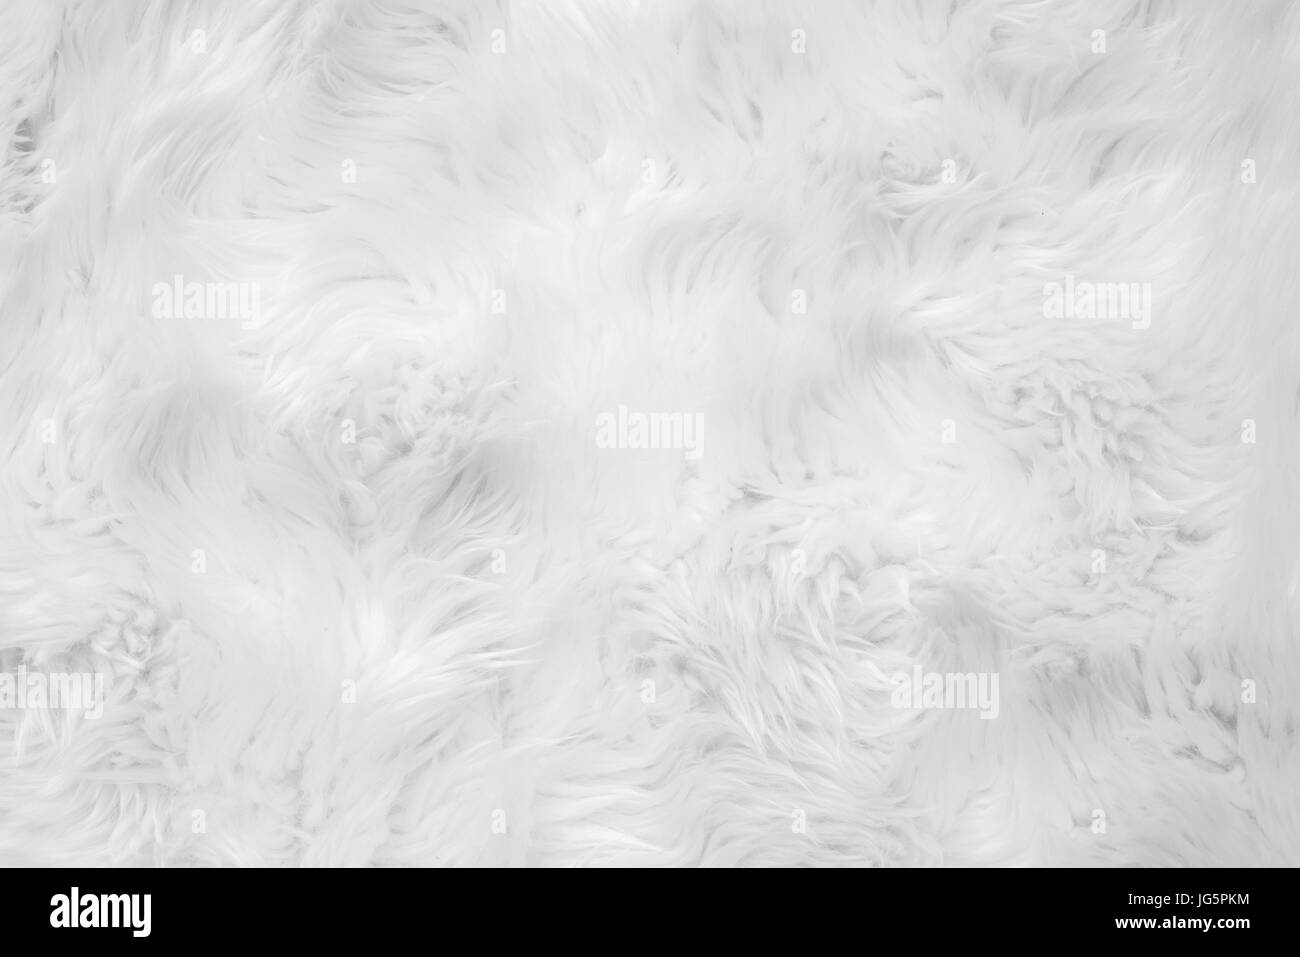 Wool close-up background - Stock Image